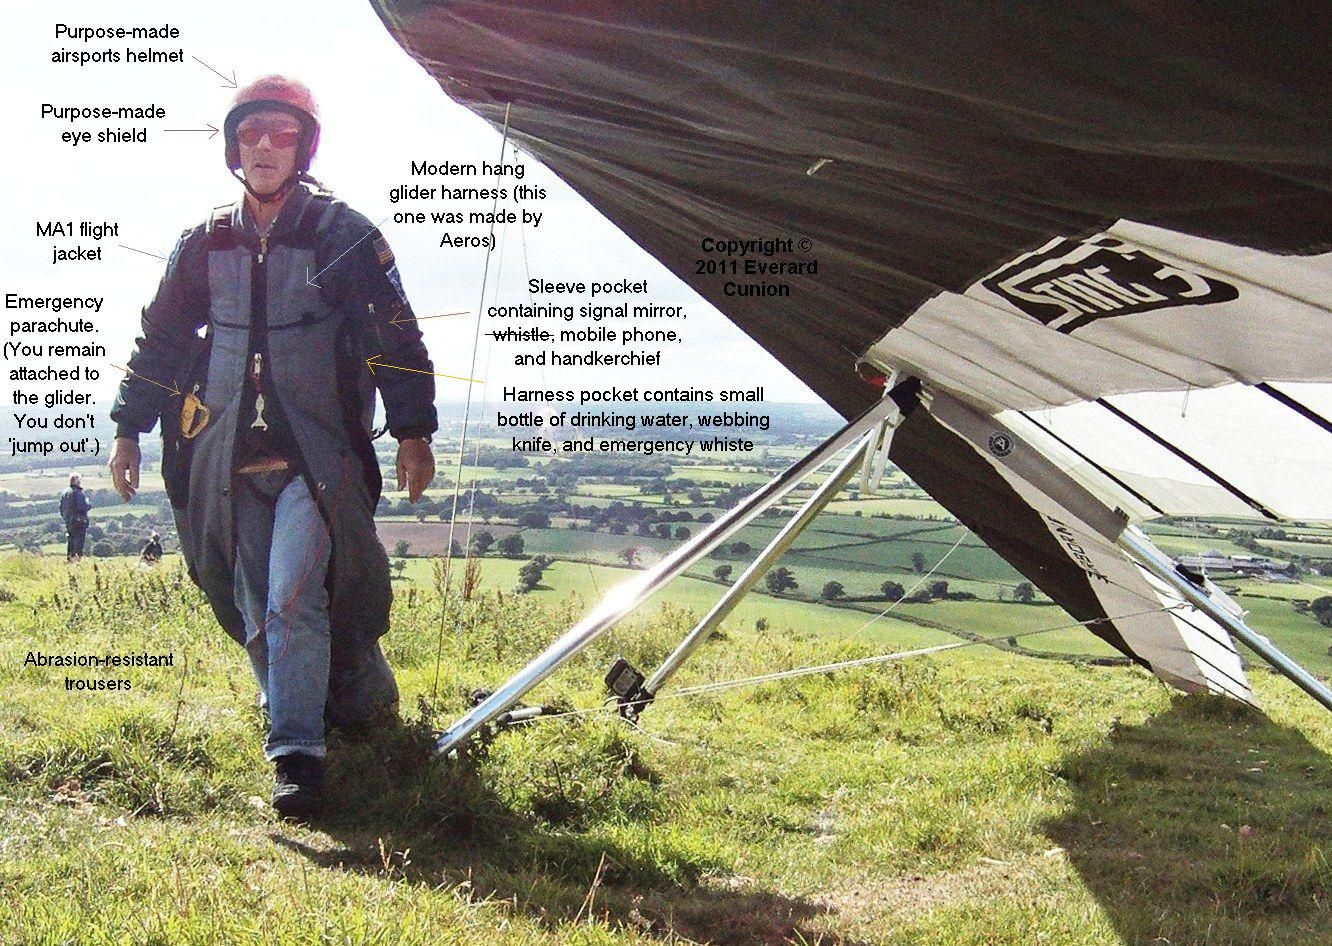 Hang gliding equipment | Everard Cunion's Articles and Images